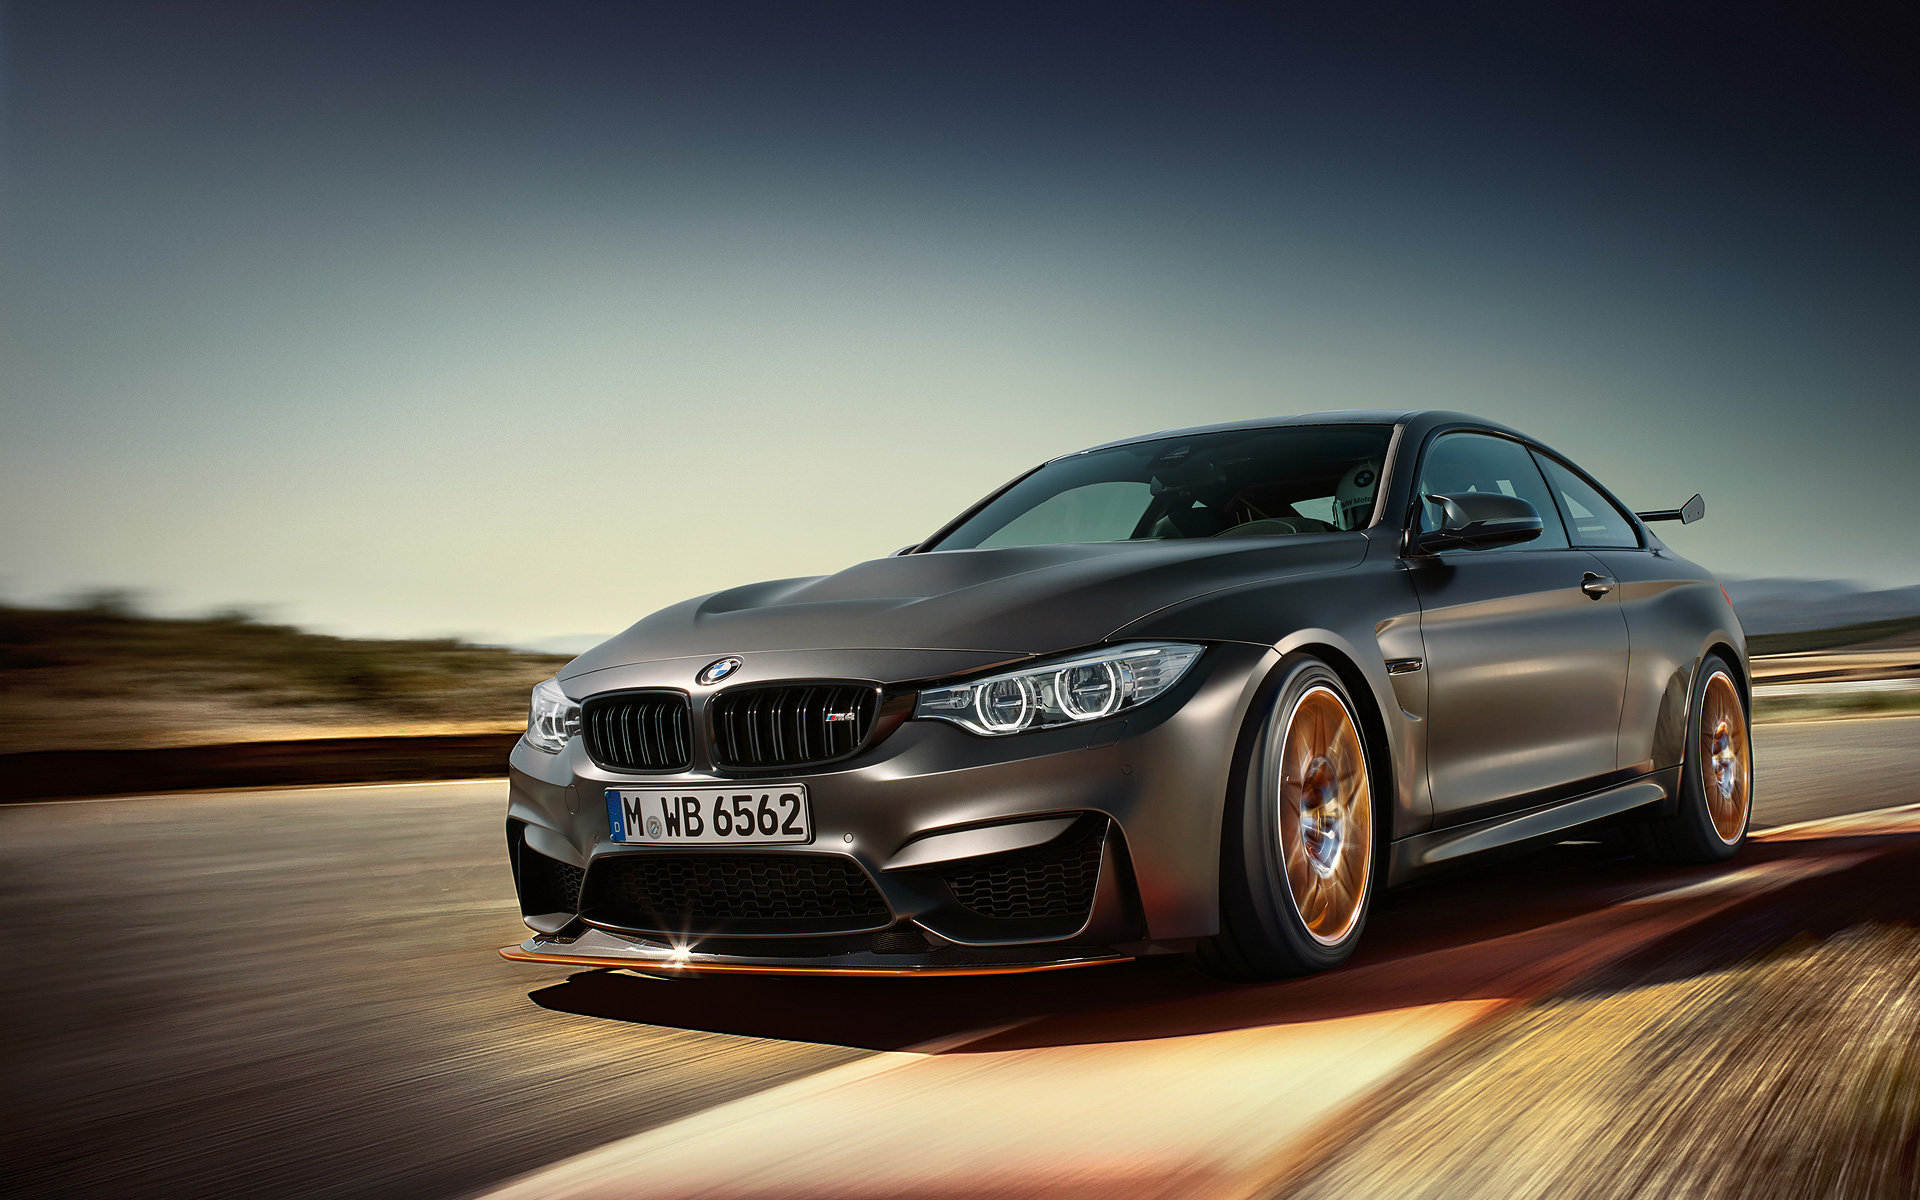 BMW M4 GTS HQ Wallpapers | Full HD Pictures